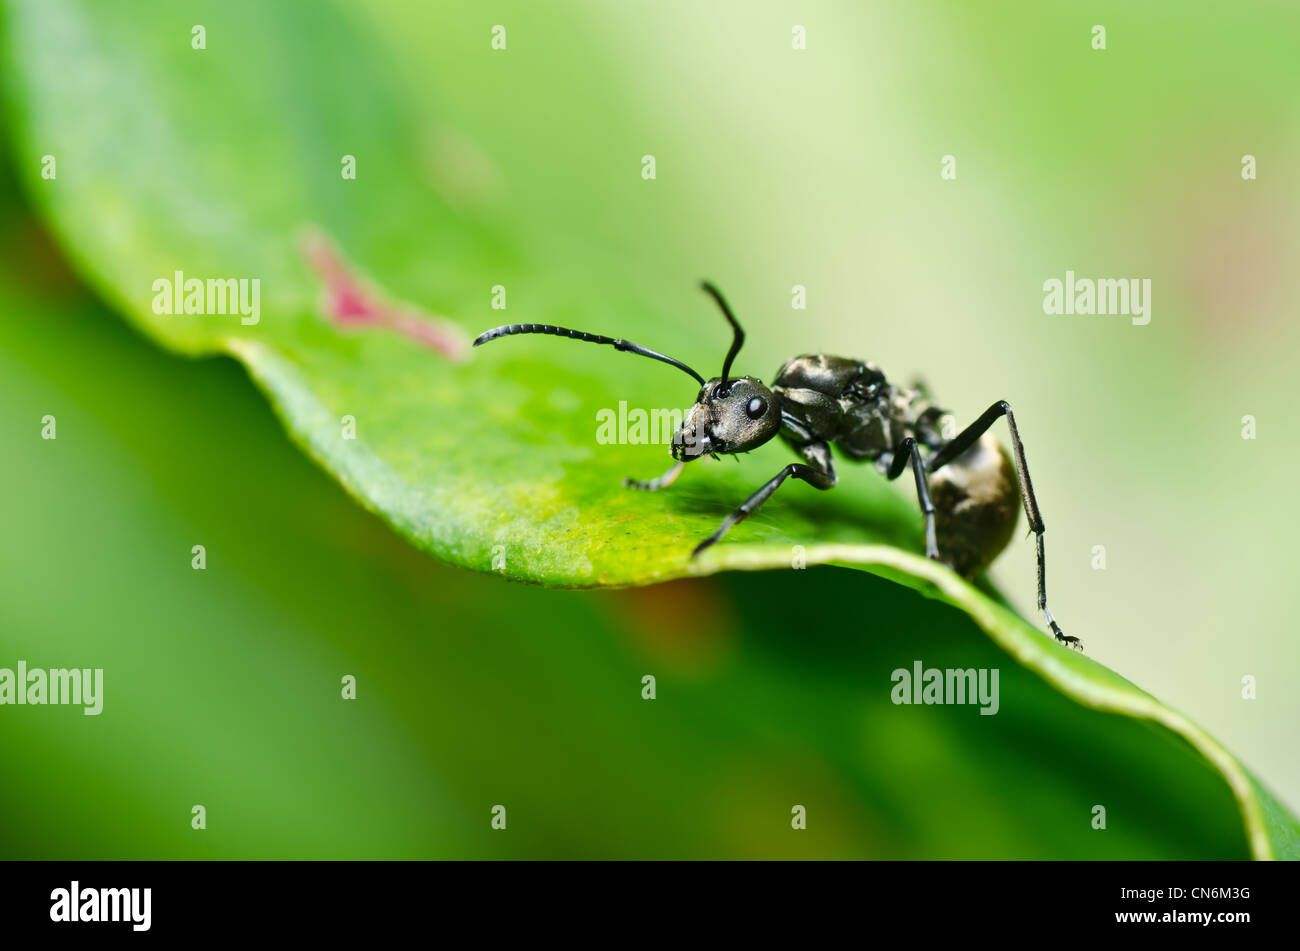 black ant in green nature or in the garden - Stock Image